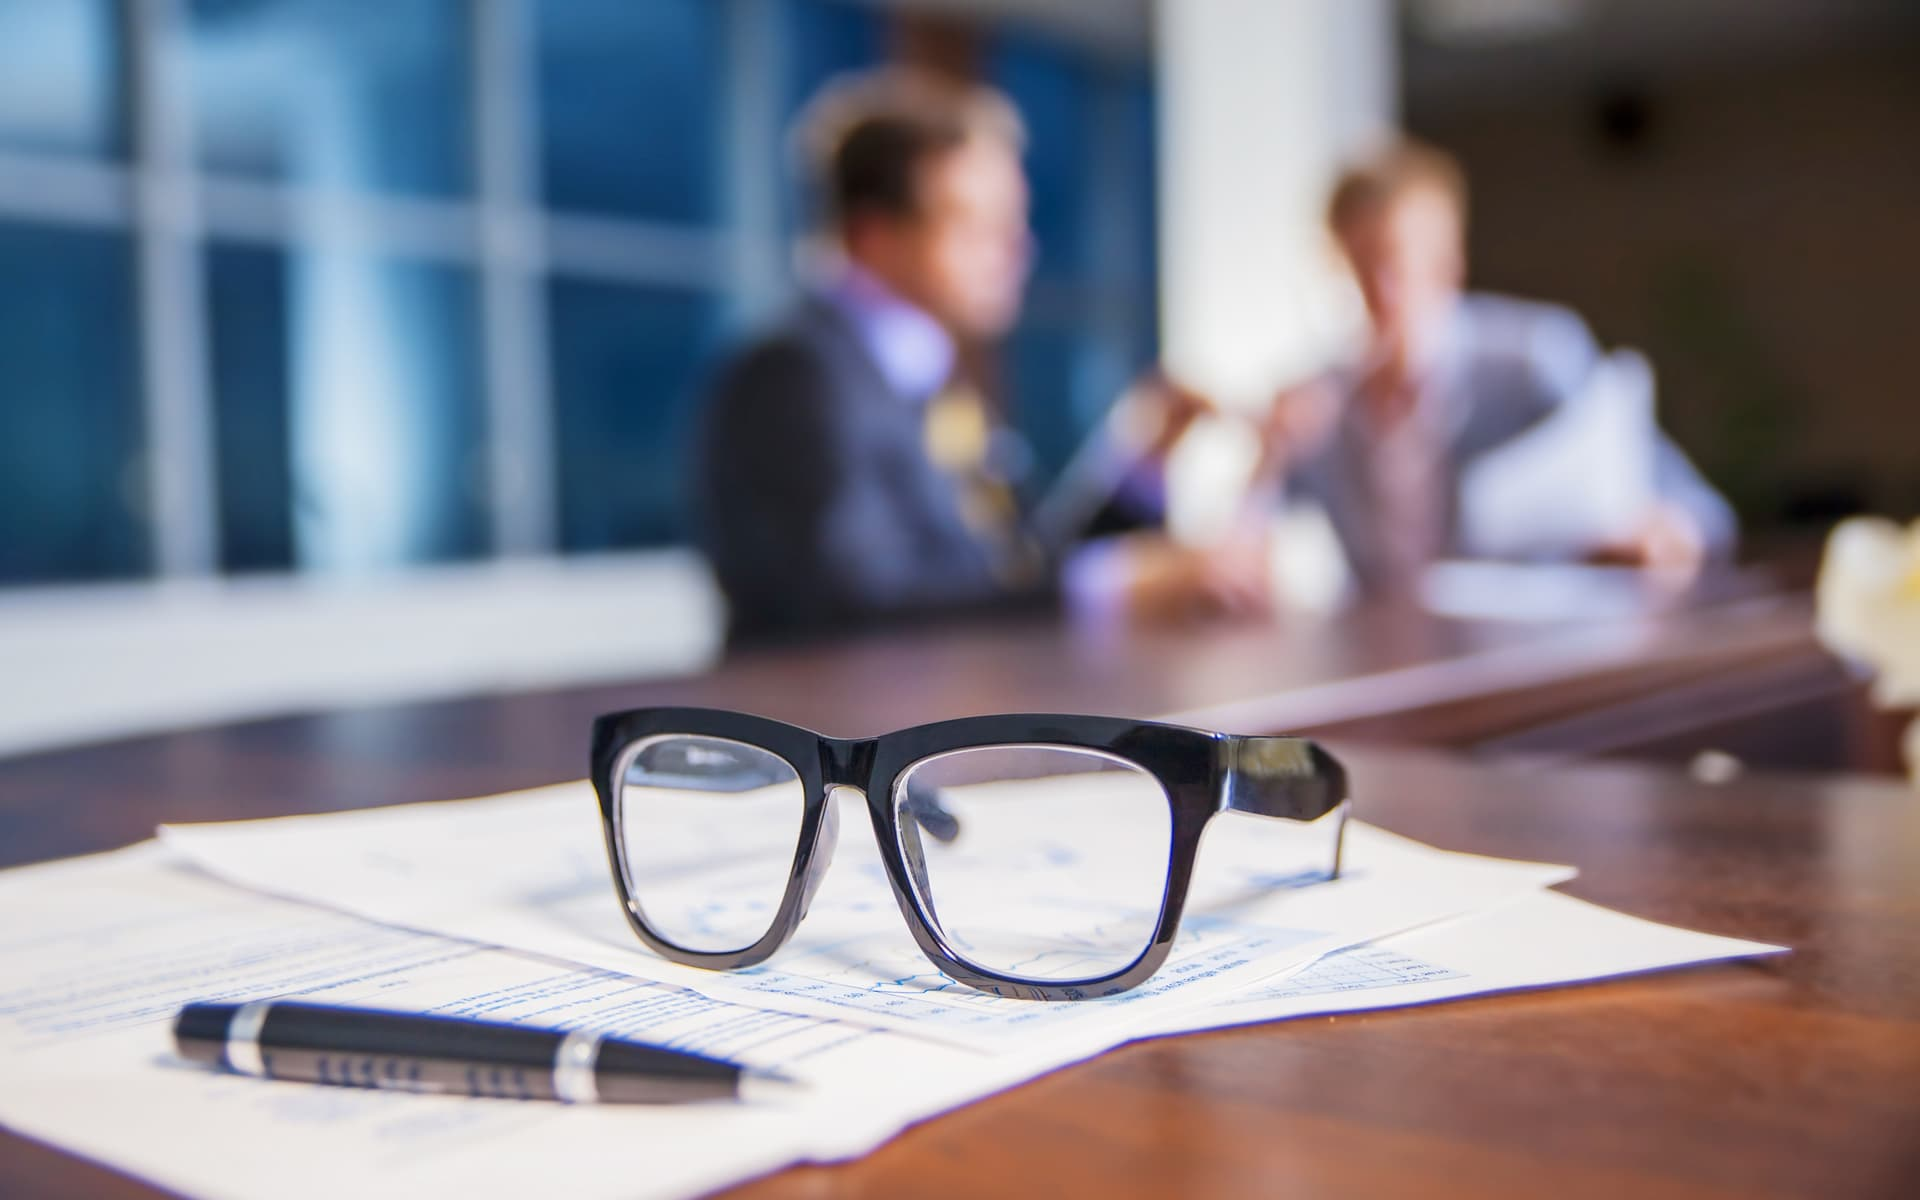 Process Thinking European Insurance - Glasses laying on a table, people talking in the background